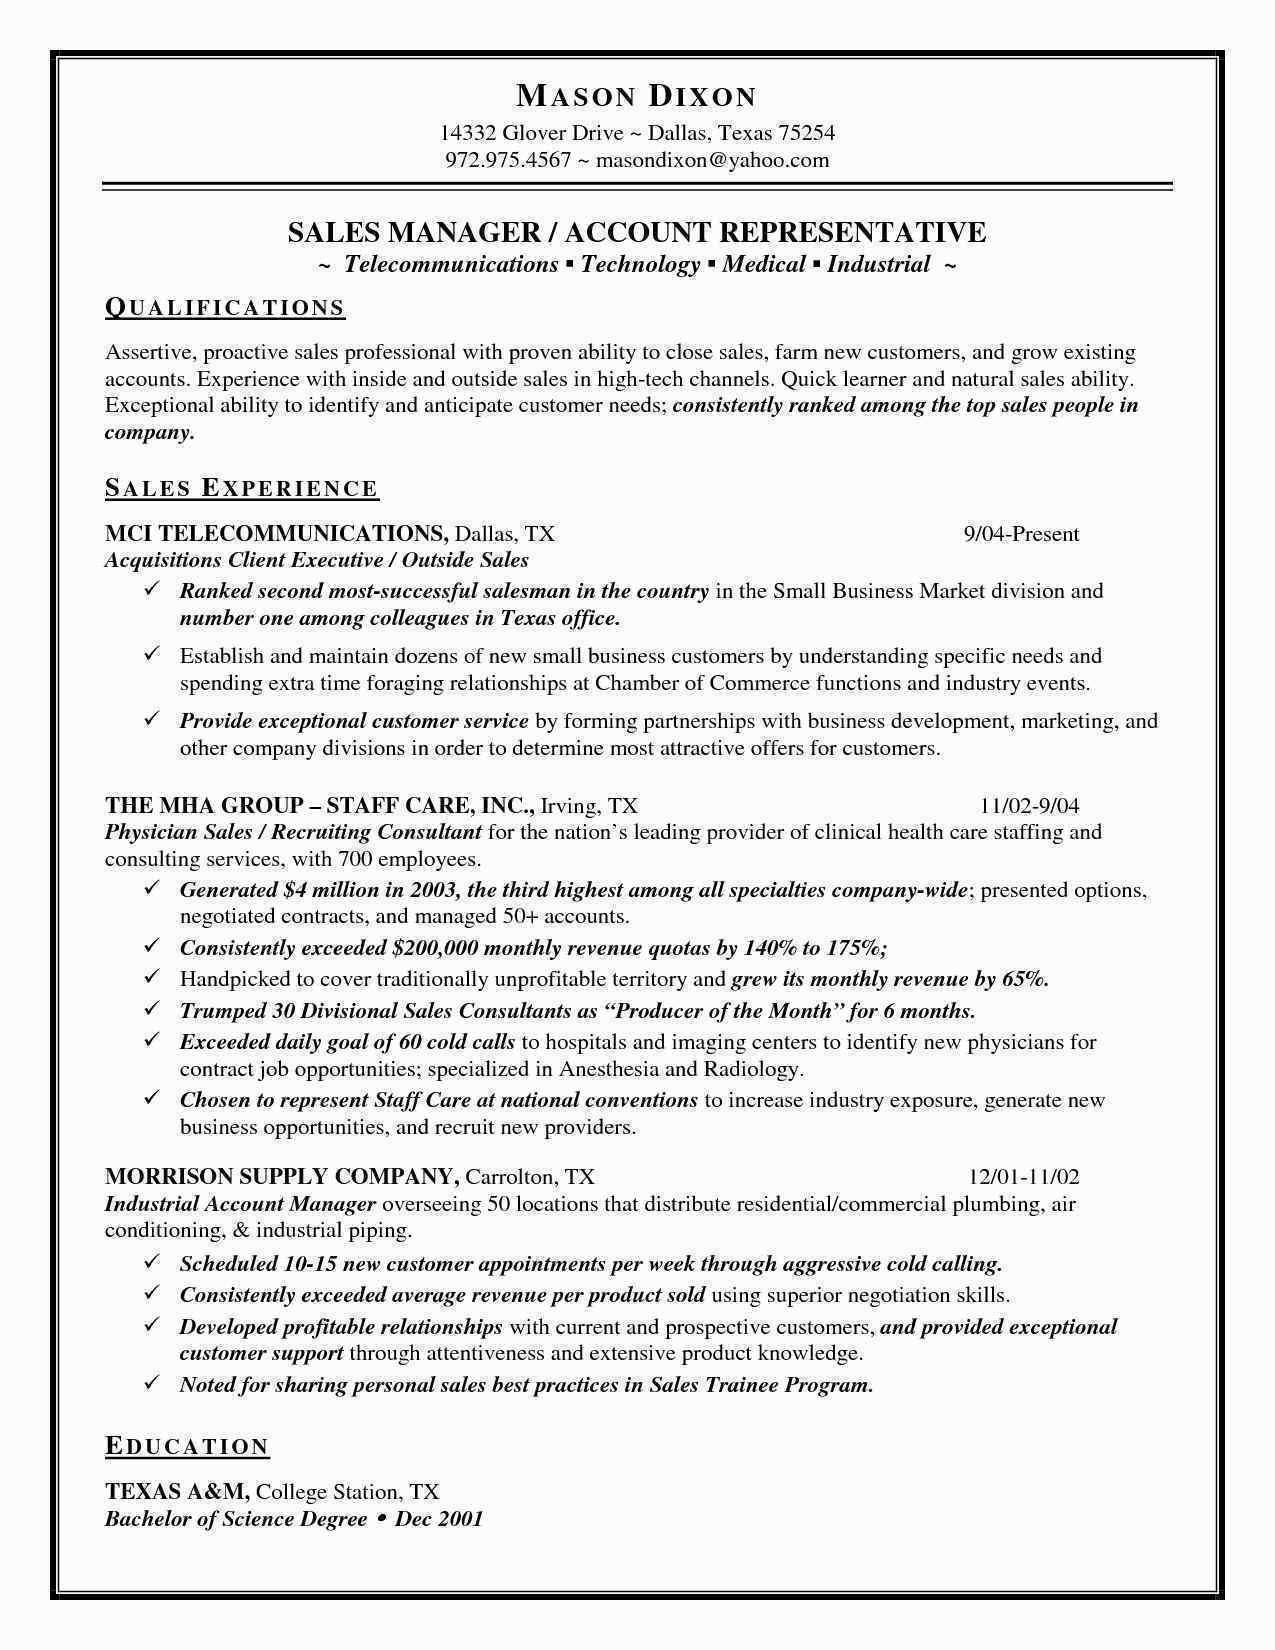 14 Sales Rep Resume Ideas